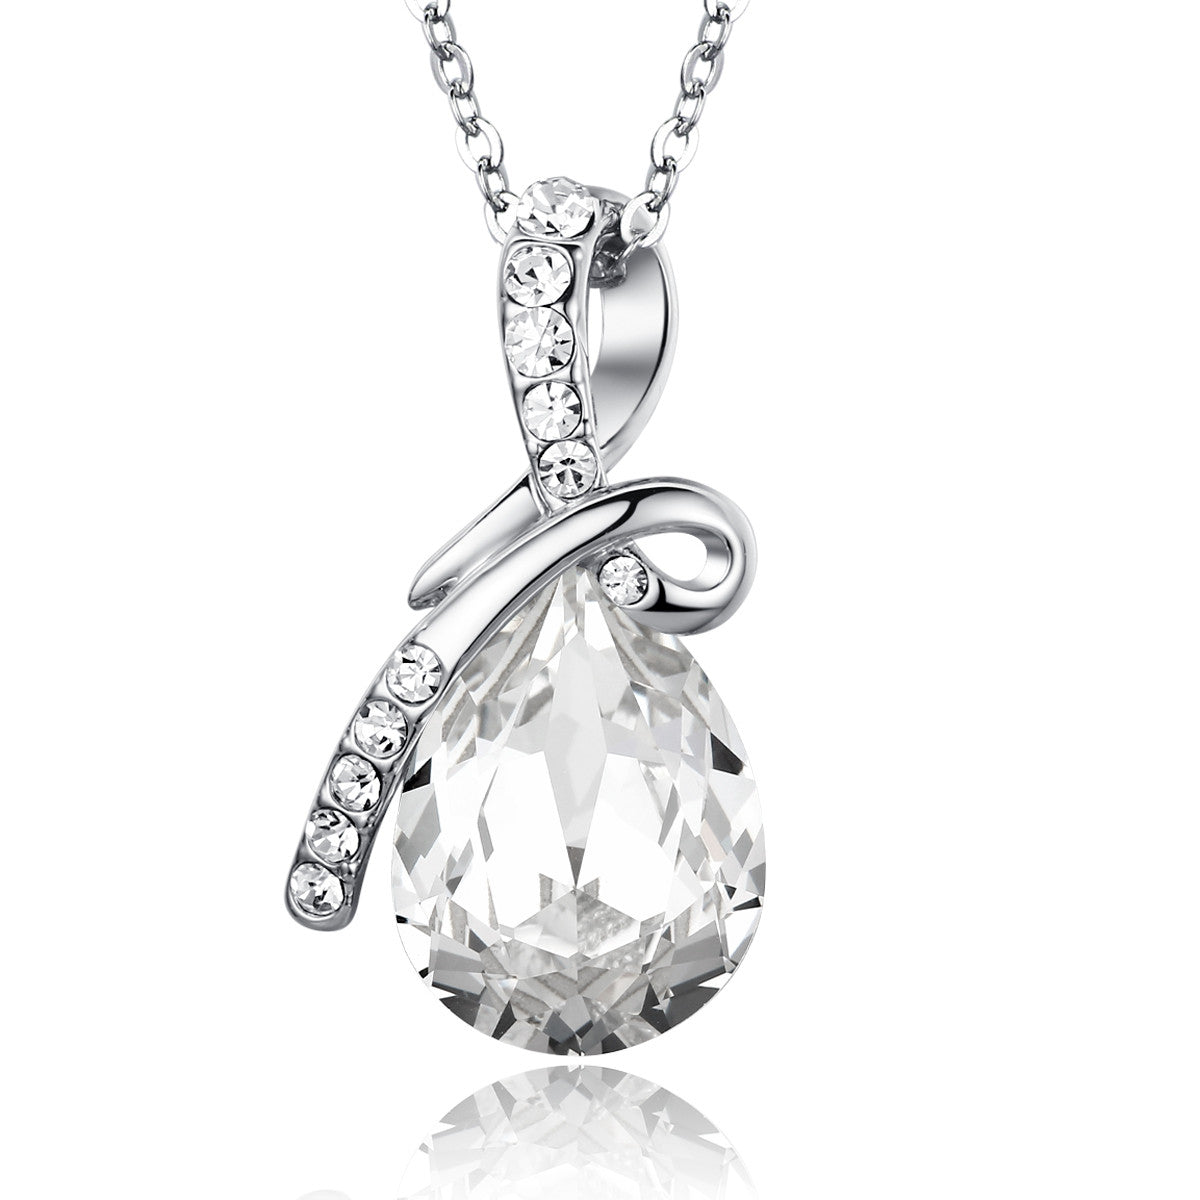 Eternal love teardrop swarovski elements crystal pendant necklace large crystal 18in chain aloadofball Gallery